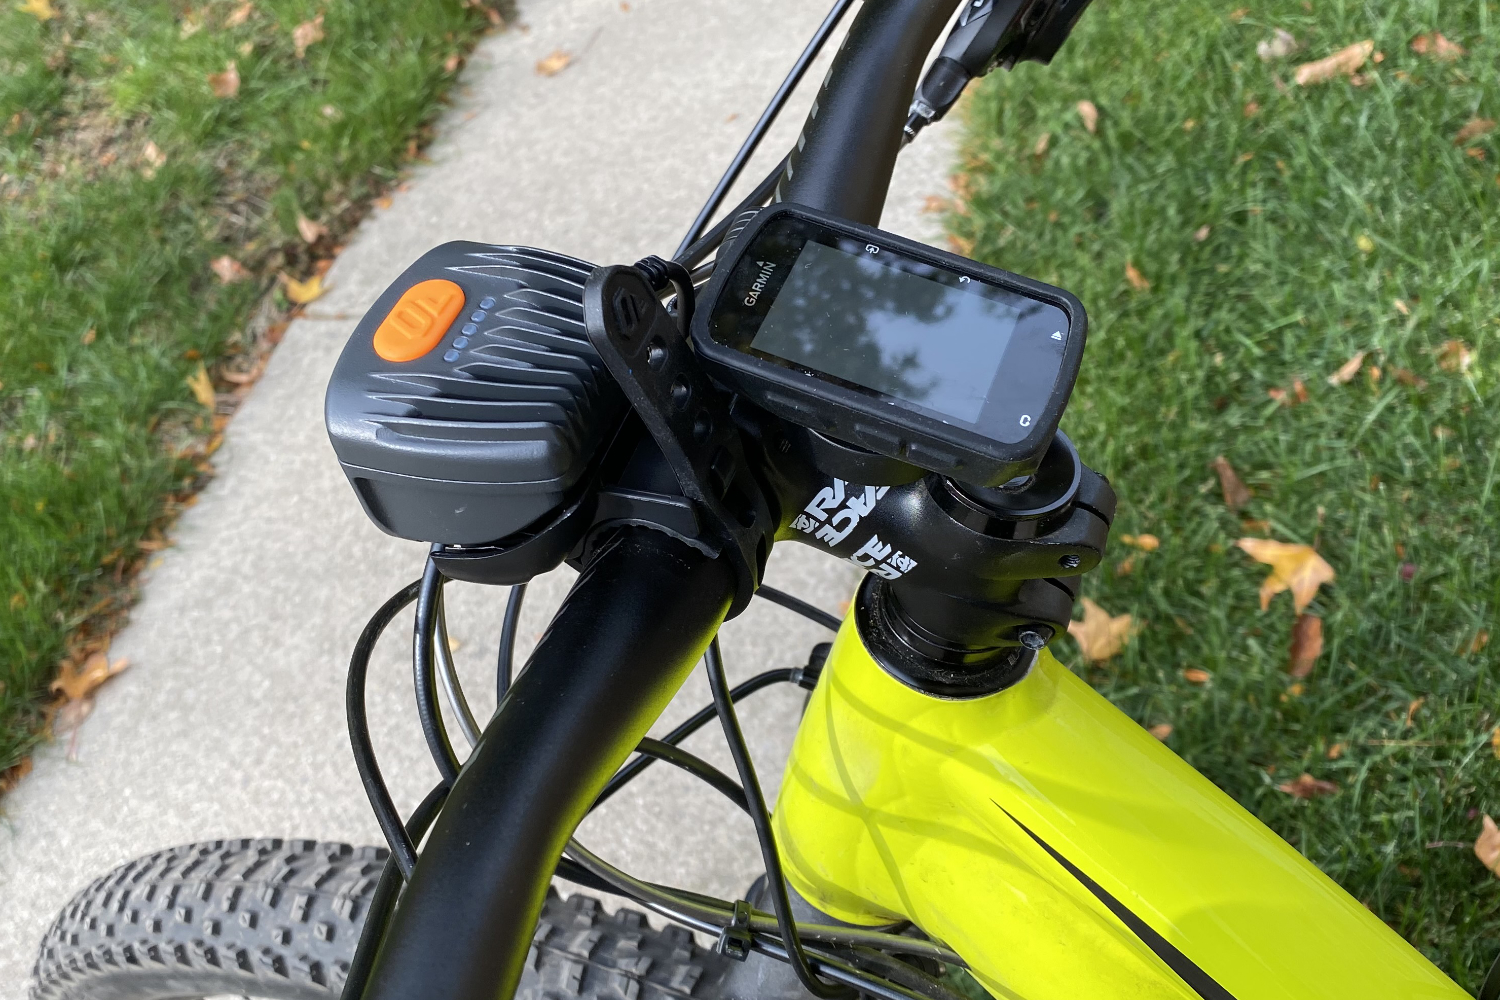 Trail Edition mounted on handlebars